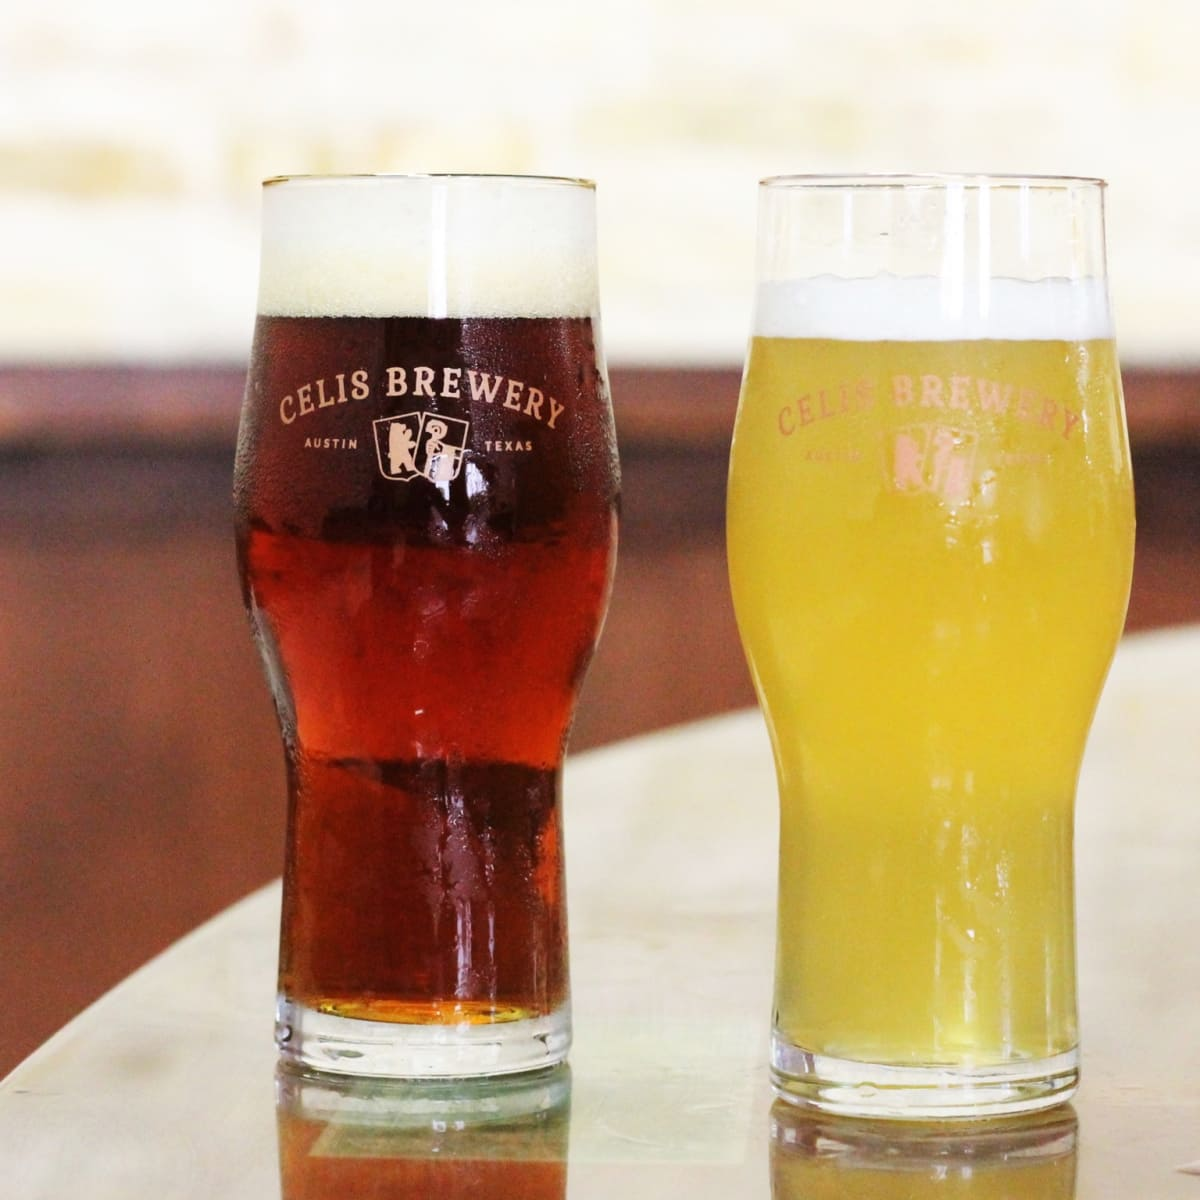 Celis Brewery pale bock and white